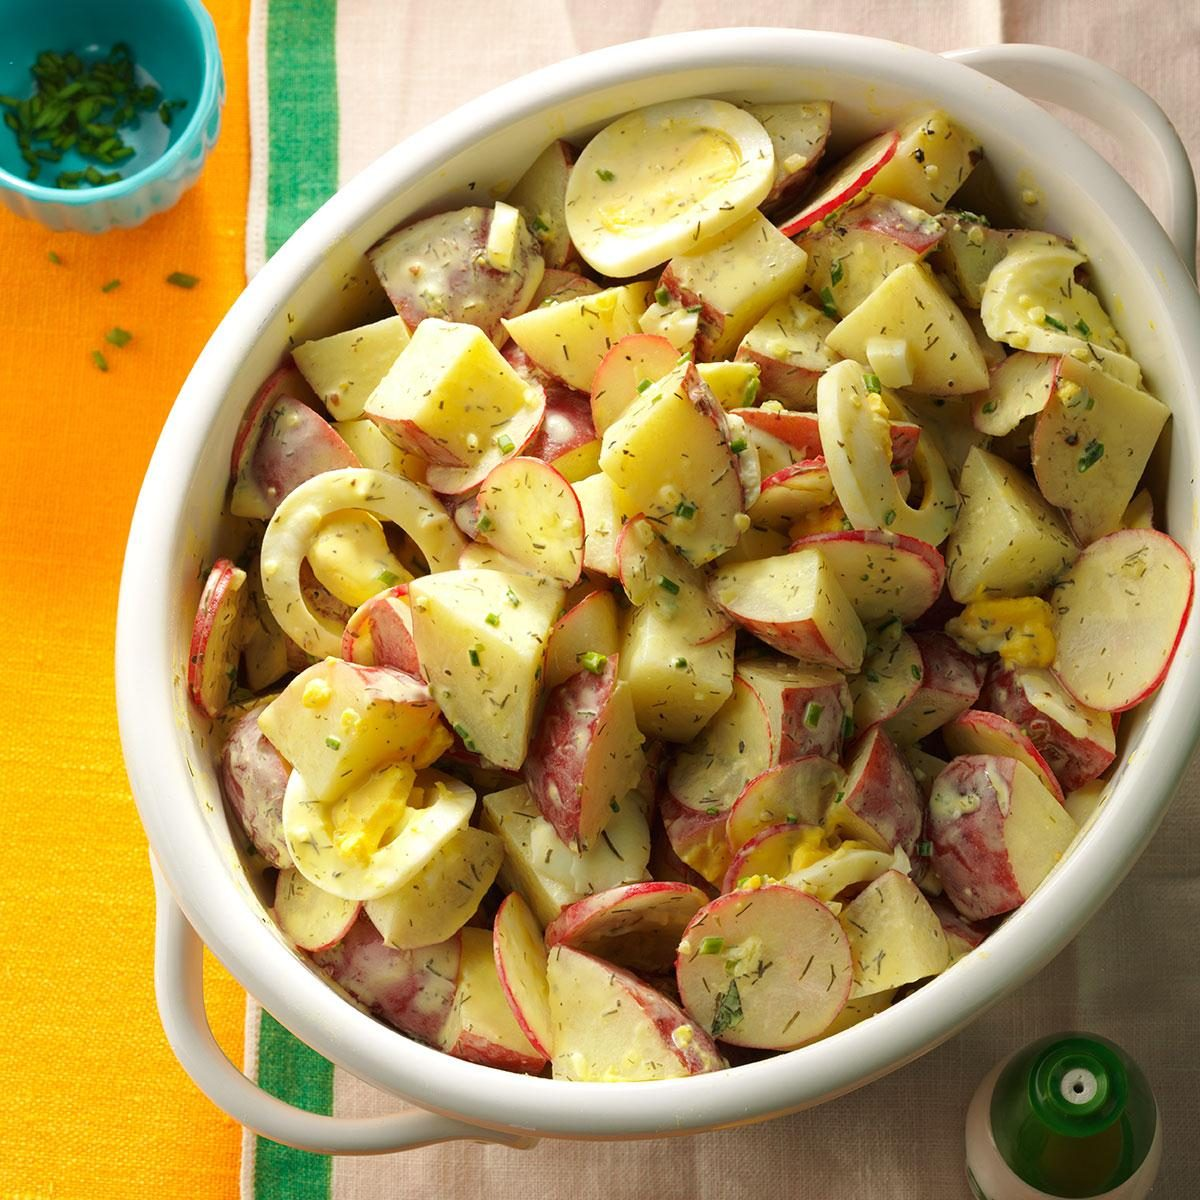 Tangy Potato Salad with Radishes and Eggs